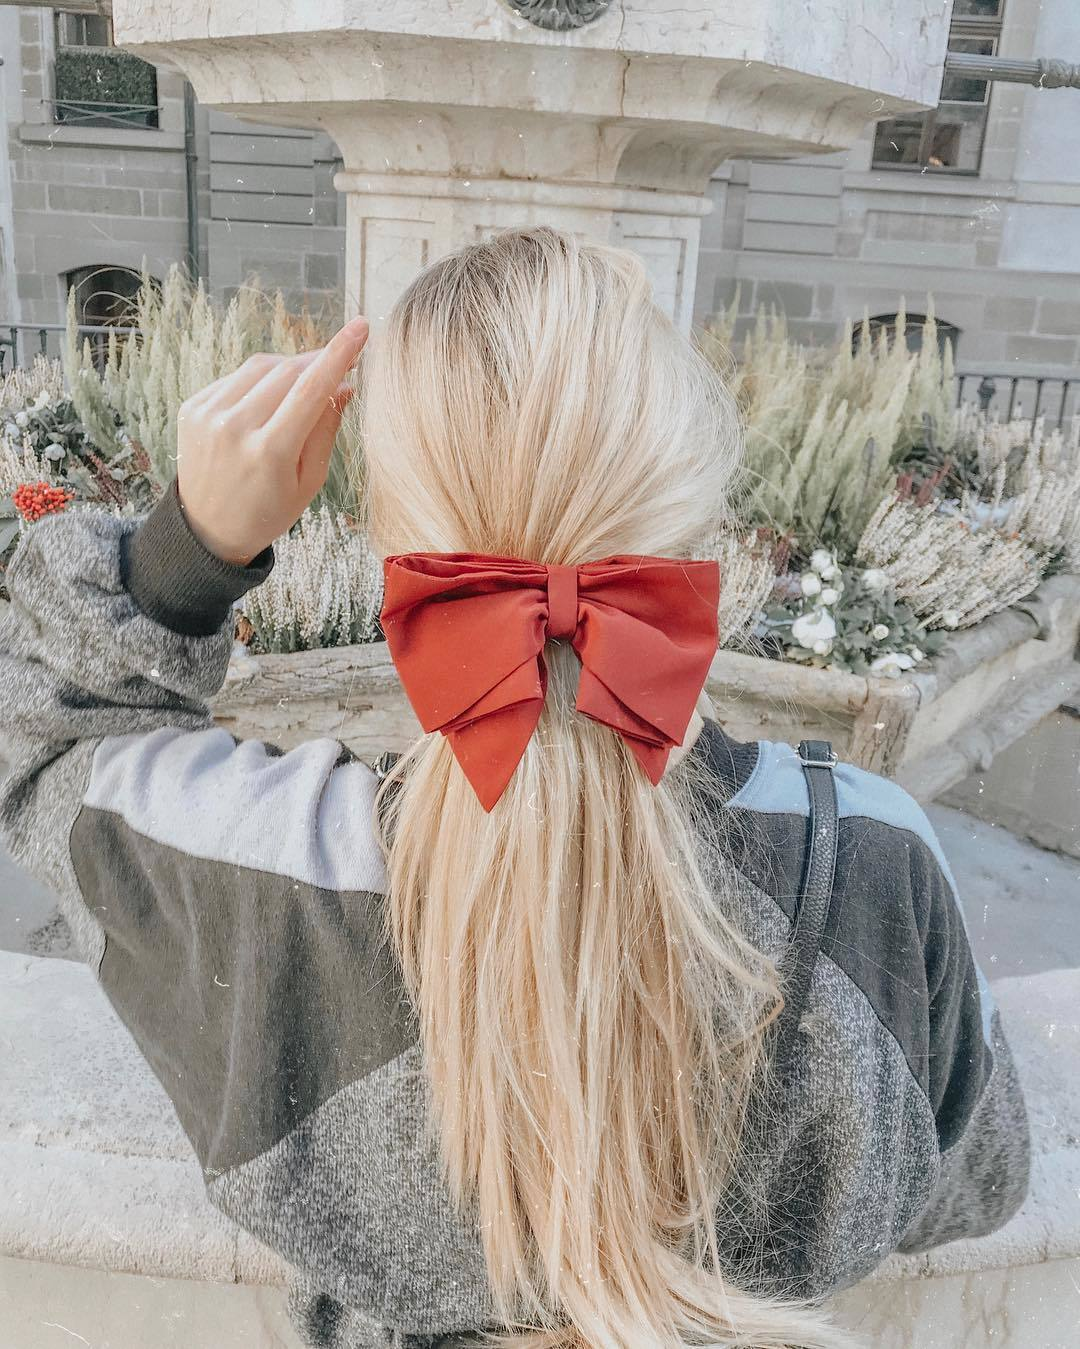 Blonde woman with a ponytail with a red bow